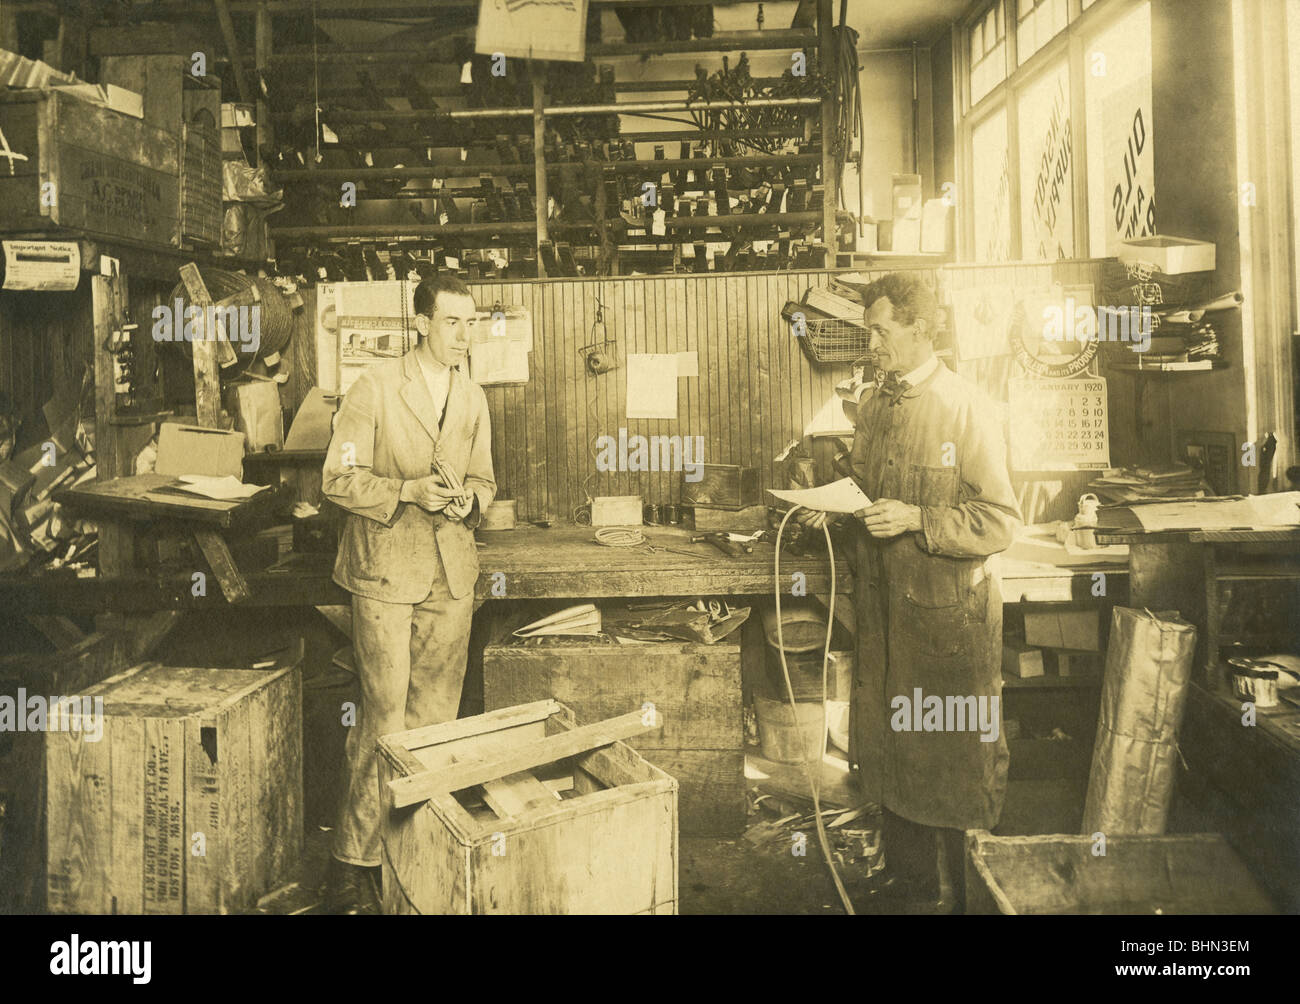 1920 photo of the mechanic's garage in the Linscott Motor Company, 690 Commonwealth Avenue, Boston, Massachusetts. - Stock Image